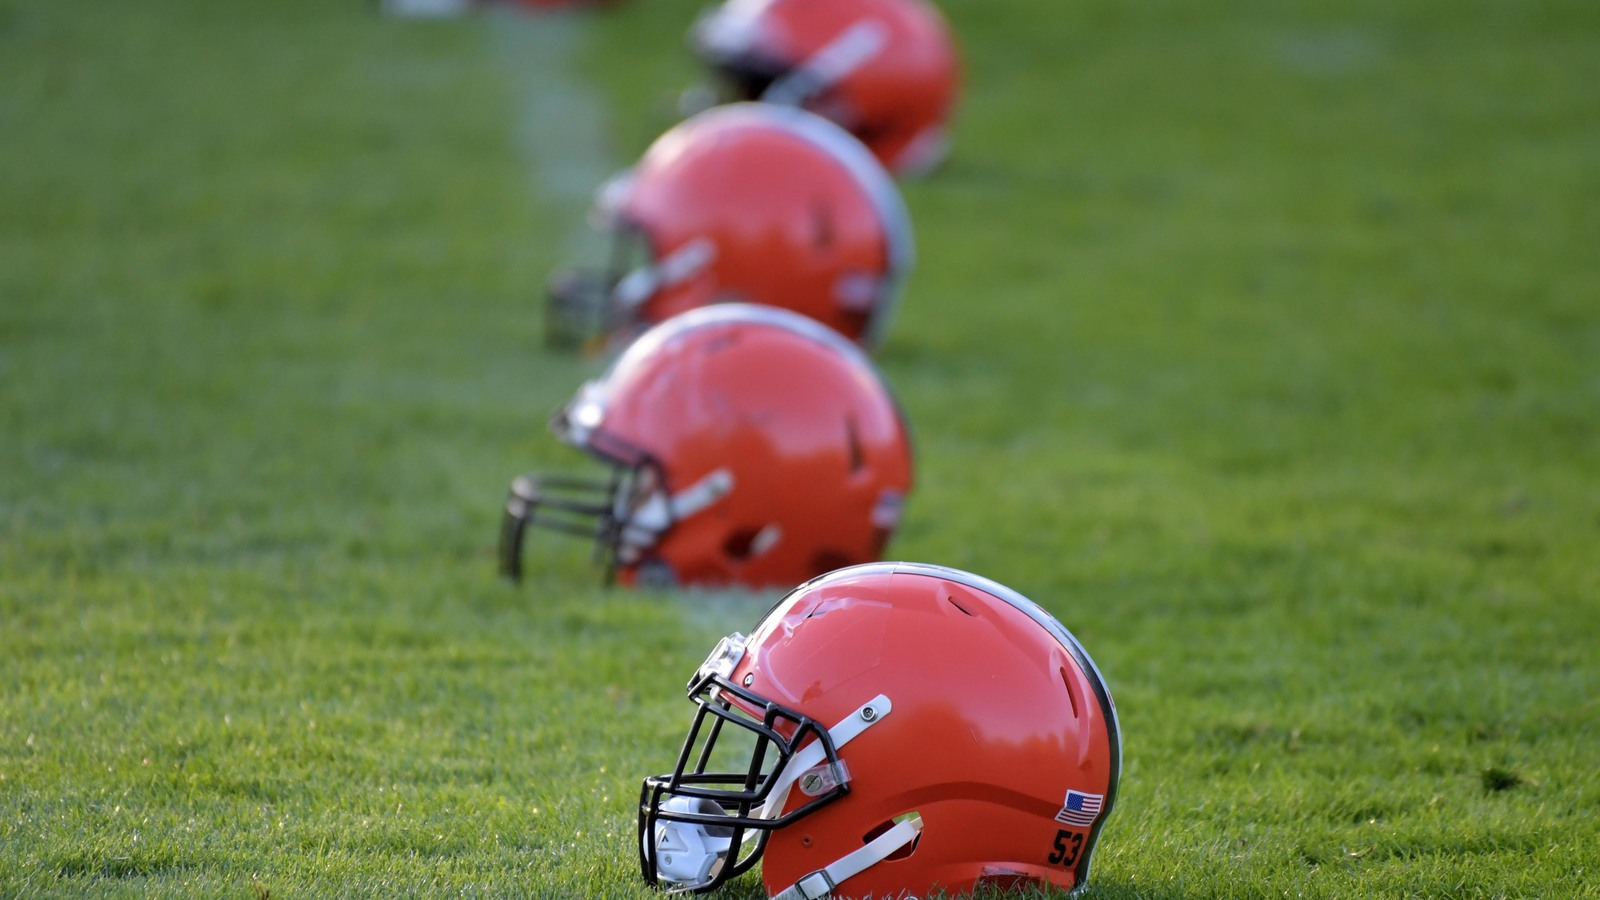 bud light to give away free beer once browns win a game yardbarker com